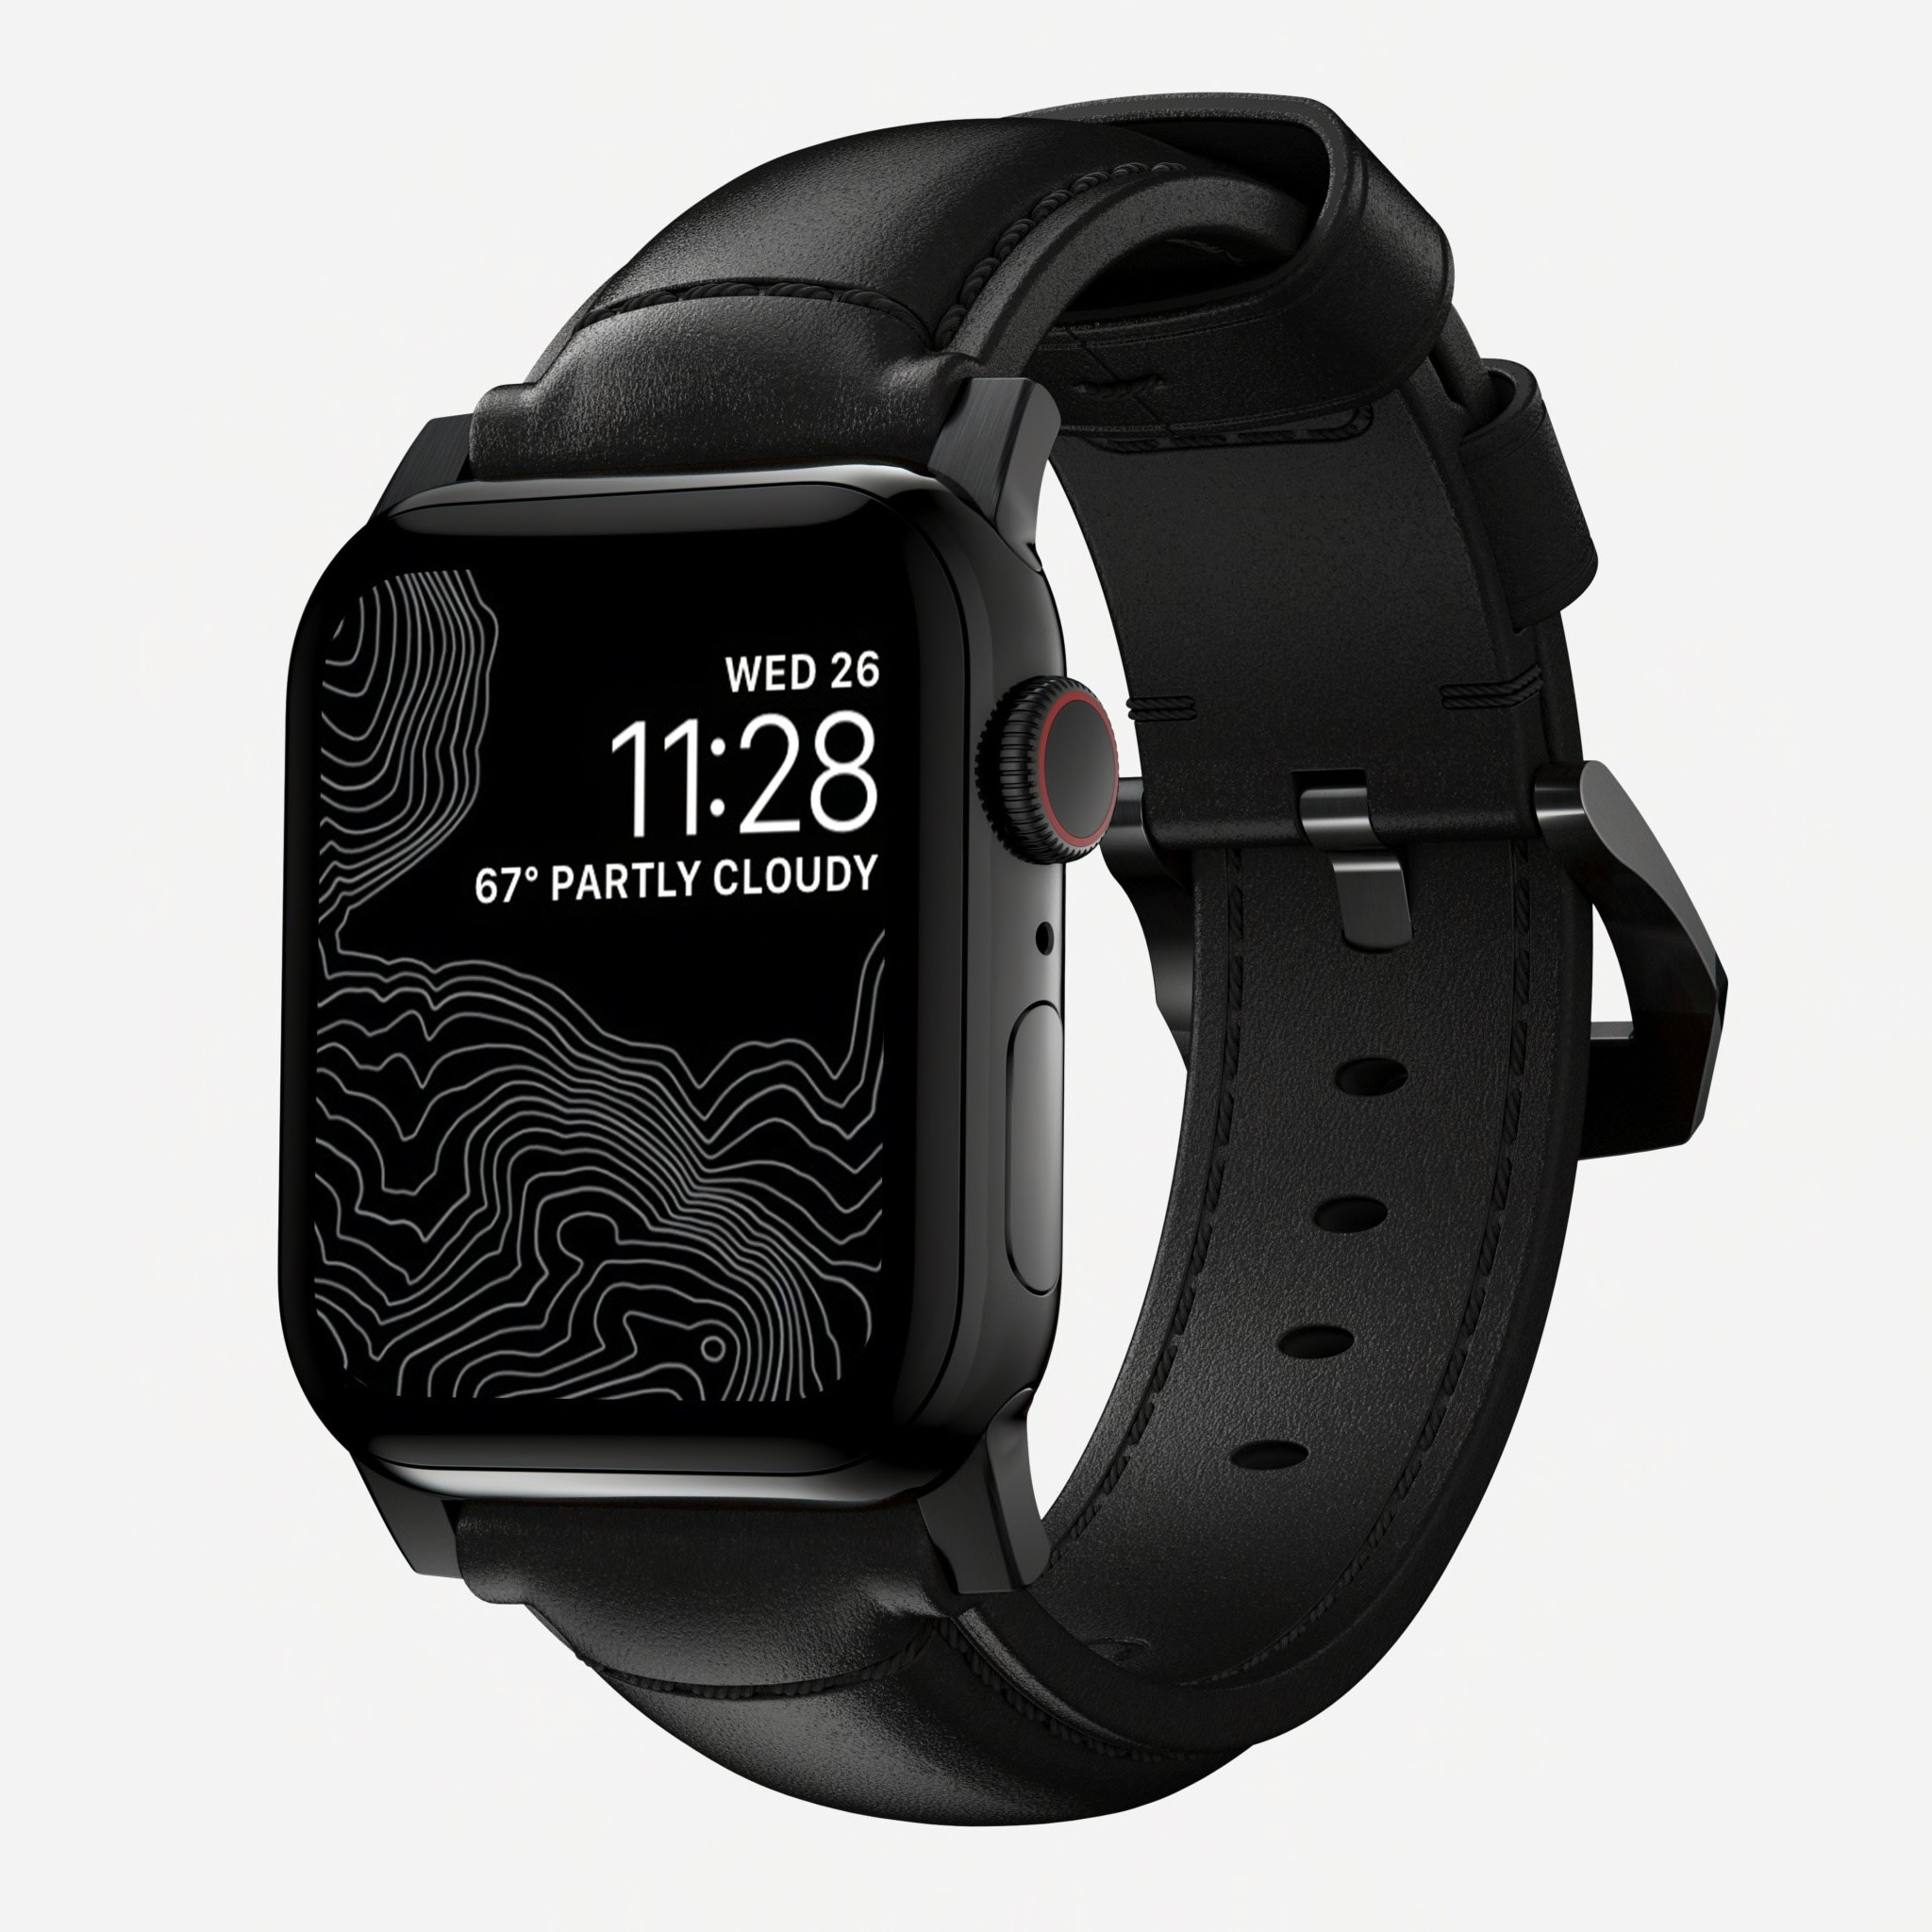 Nomad - Traditional Strap for Apple Watch 42/44mm - Black Leather Black Hardware, NM1A41BT00